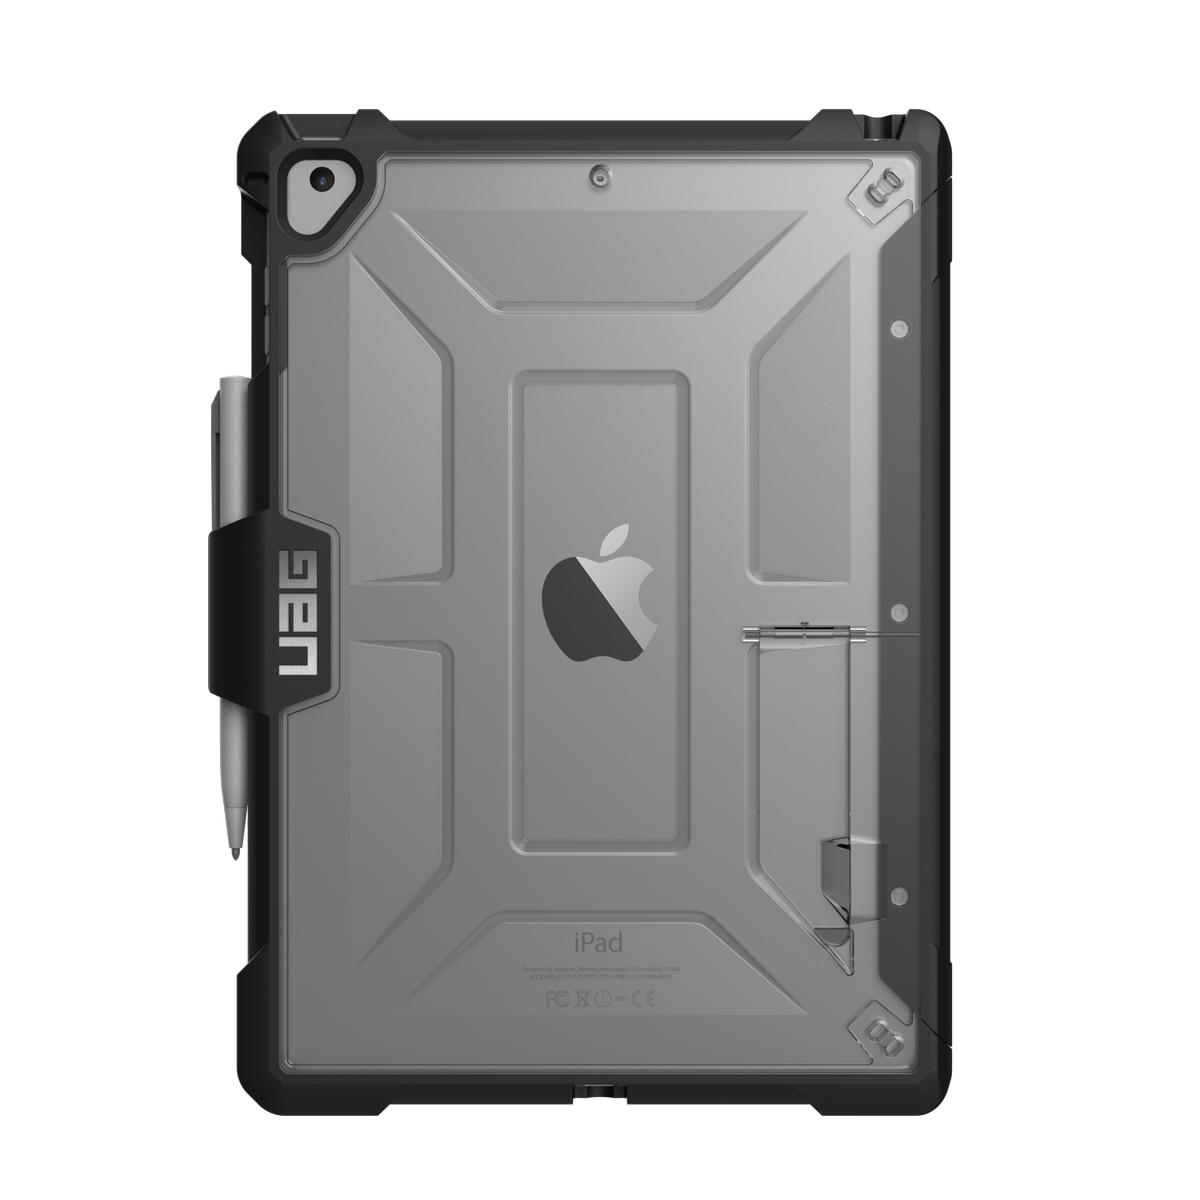 Uag Plasma Ipad 5Th 6Th Gen Case Compatible With The Following Ipad 2018 9 7 Inch 6Th Gen Model Numbers A1893 A1954 Ipad 2017 9 7 Inch 5Th Gen Model Numbers A1822 A1823 Ipad Air Model Number A1474 A1475 Ipad Pro 9 7 Inch Model Coupon Code